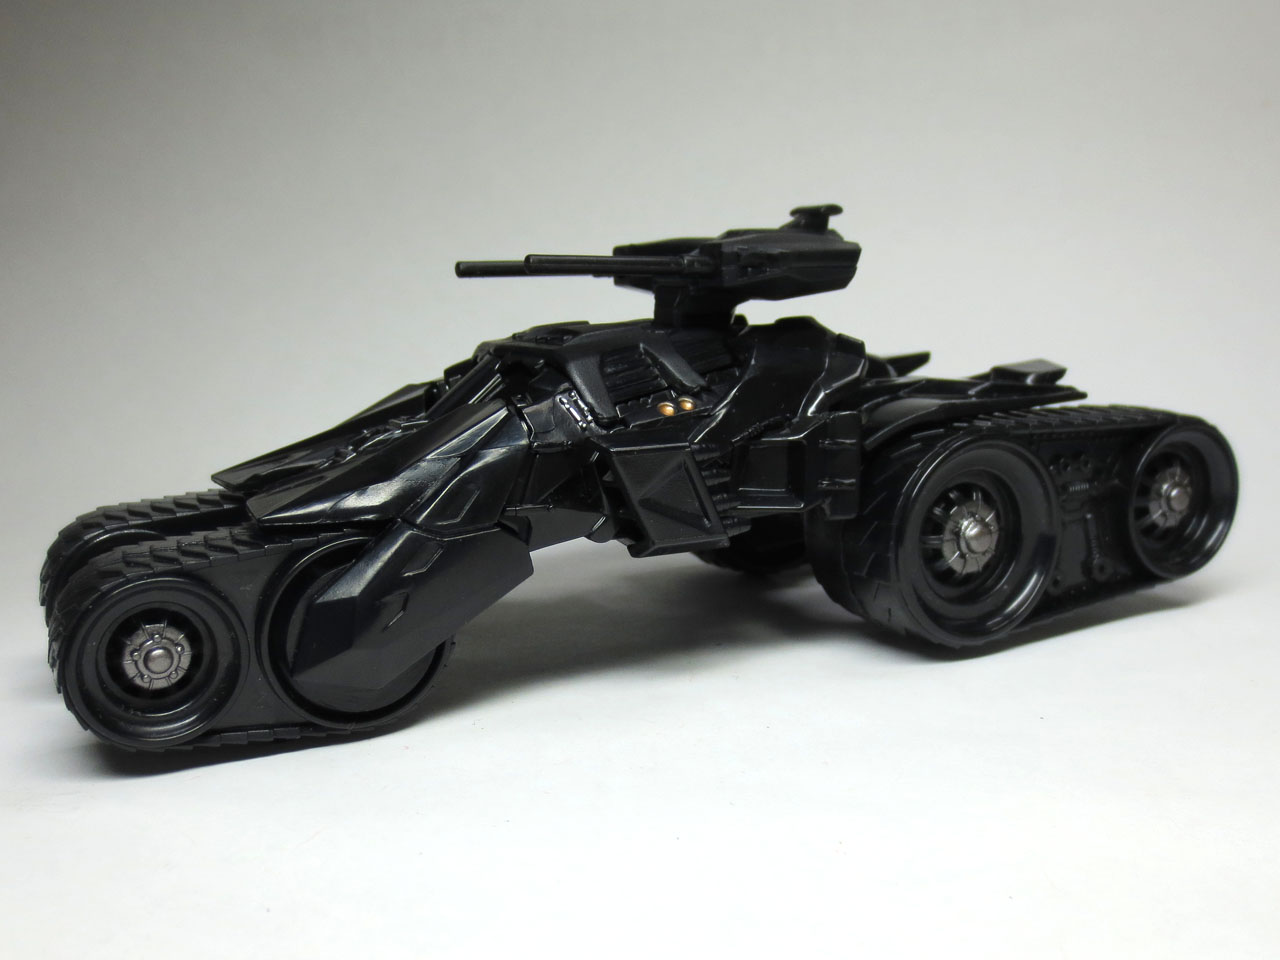 HW_custom_motors_batmobile_4th_28.jpg